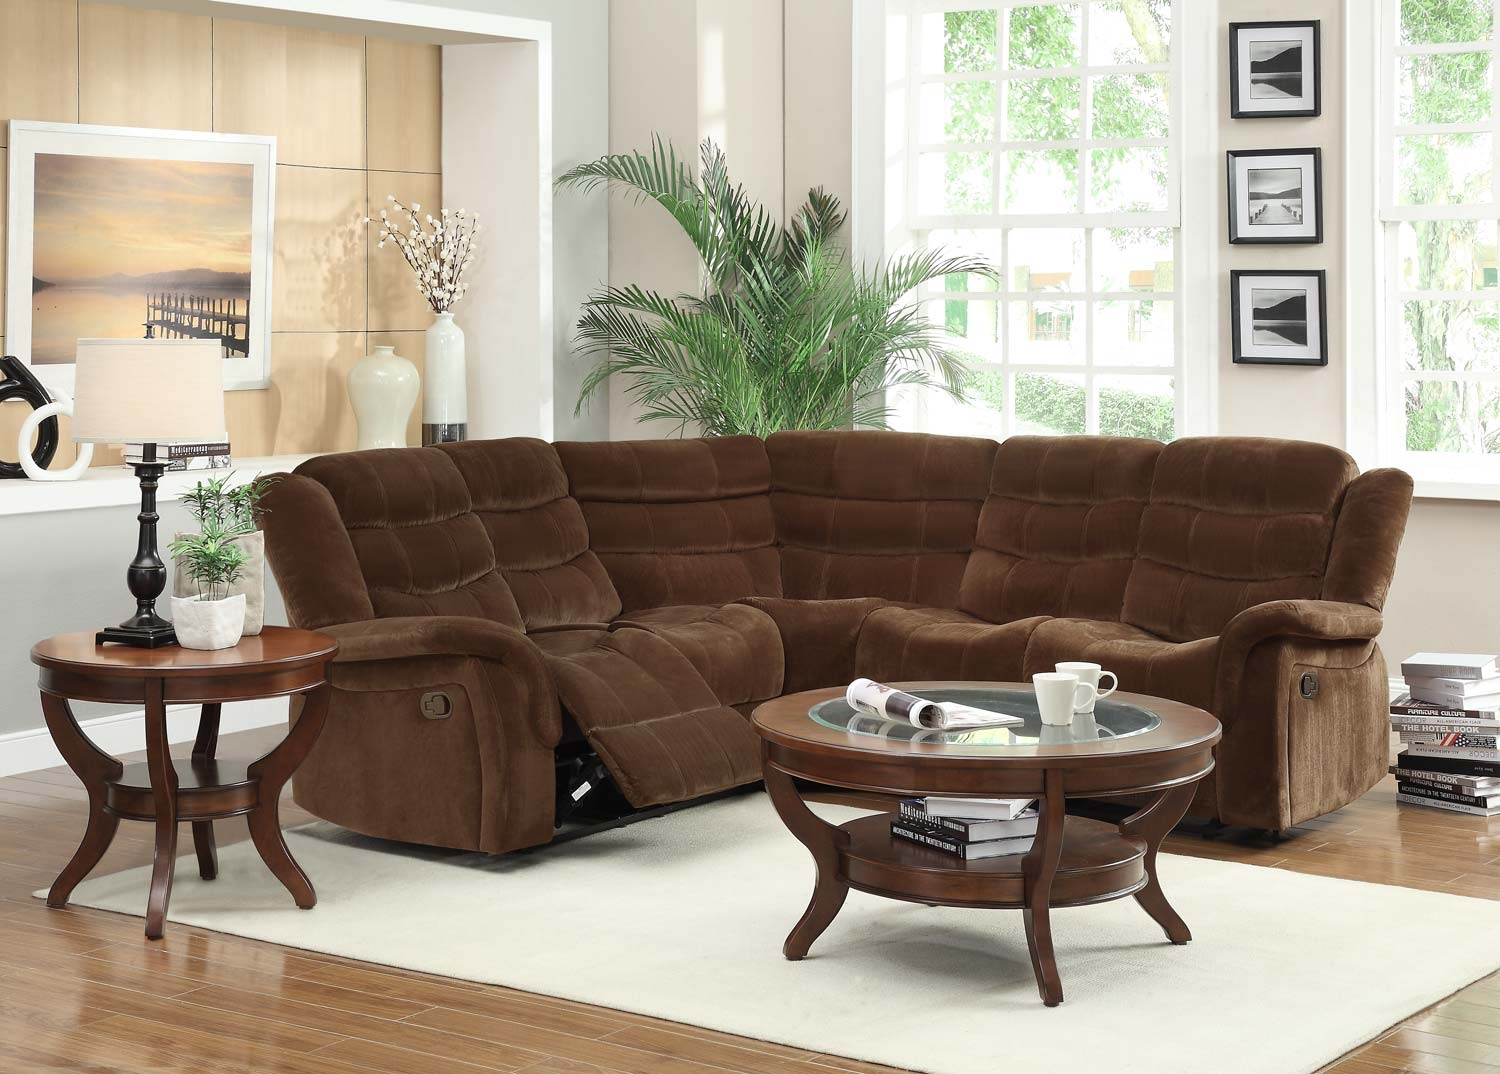 Homelegance Norton Reclining Sectional Sofa Set Chocolate In Chocolate Brown Sectional Sofa (Image 13 of 15)